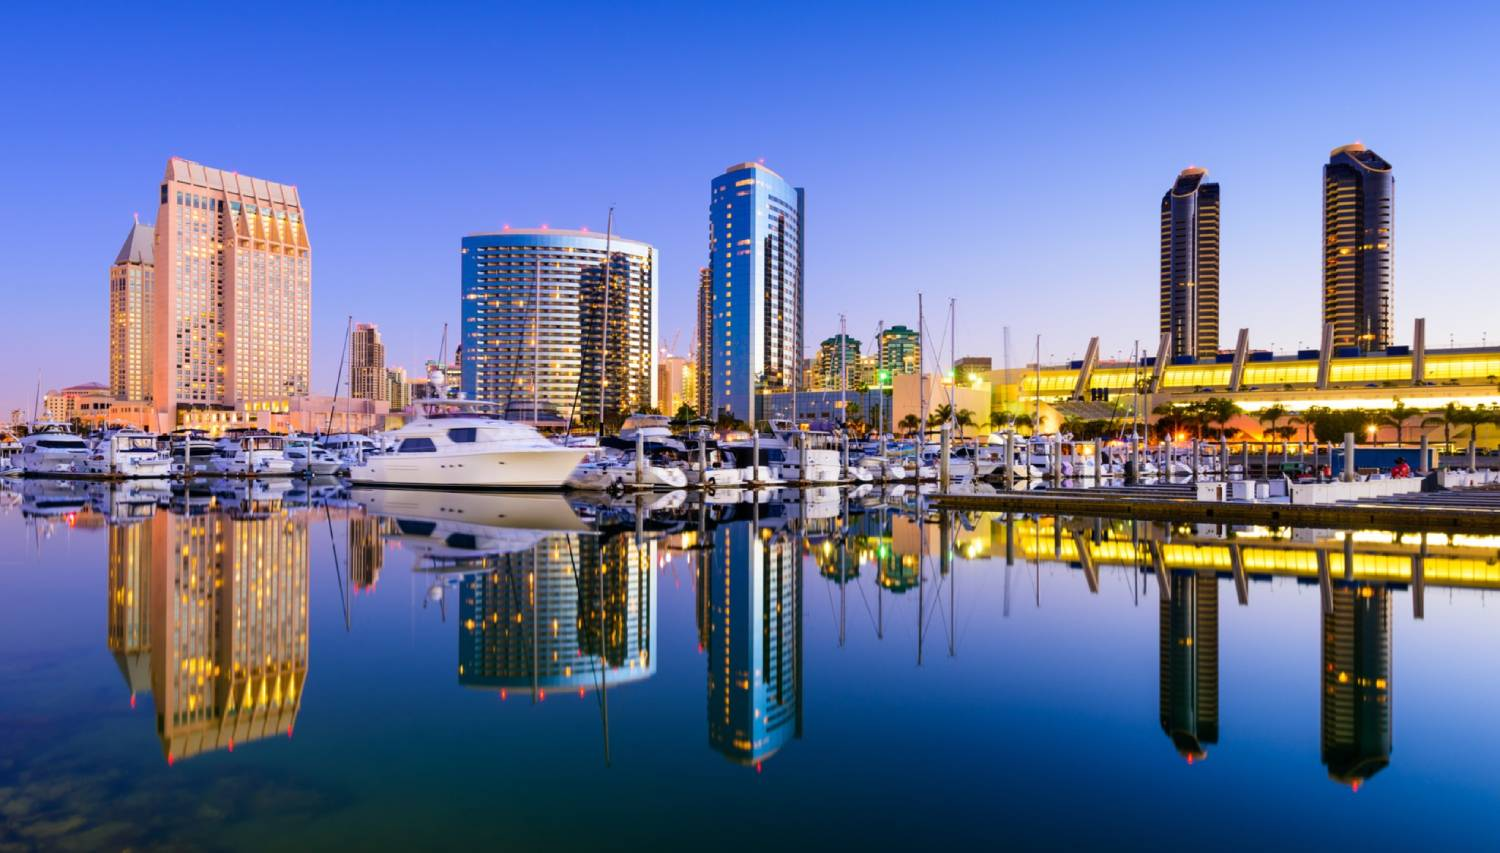 Embarcadero - Things To Do In San Diego